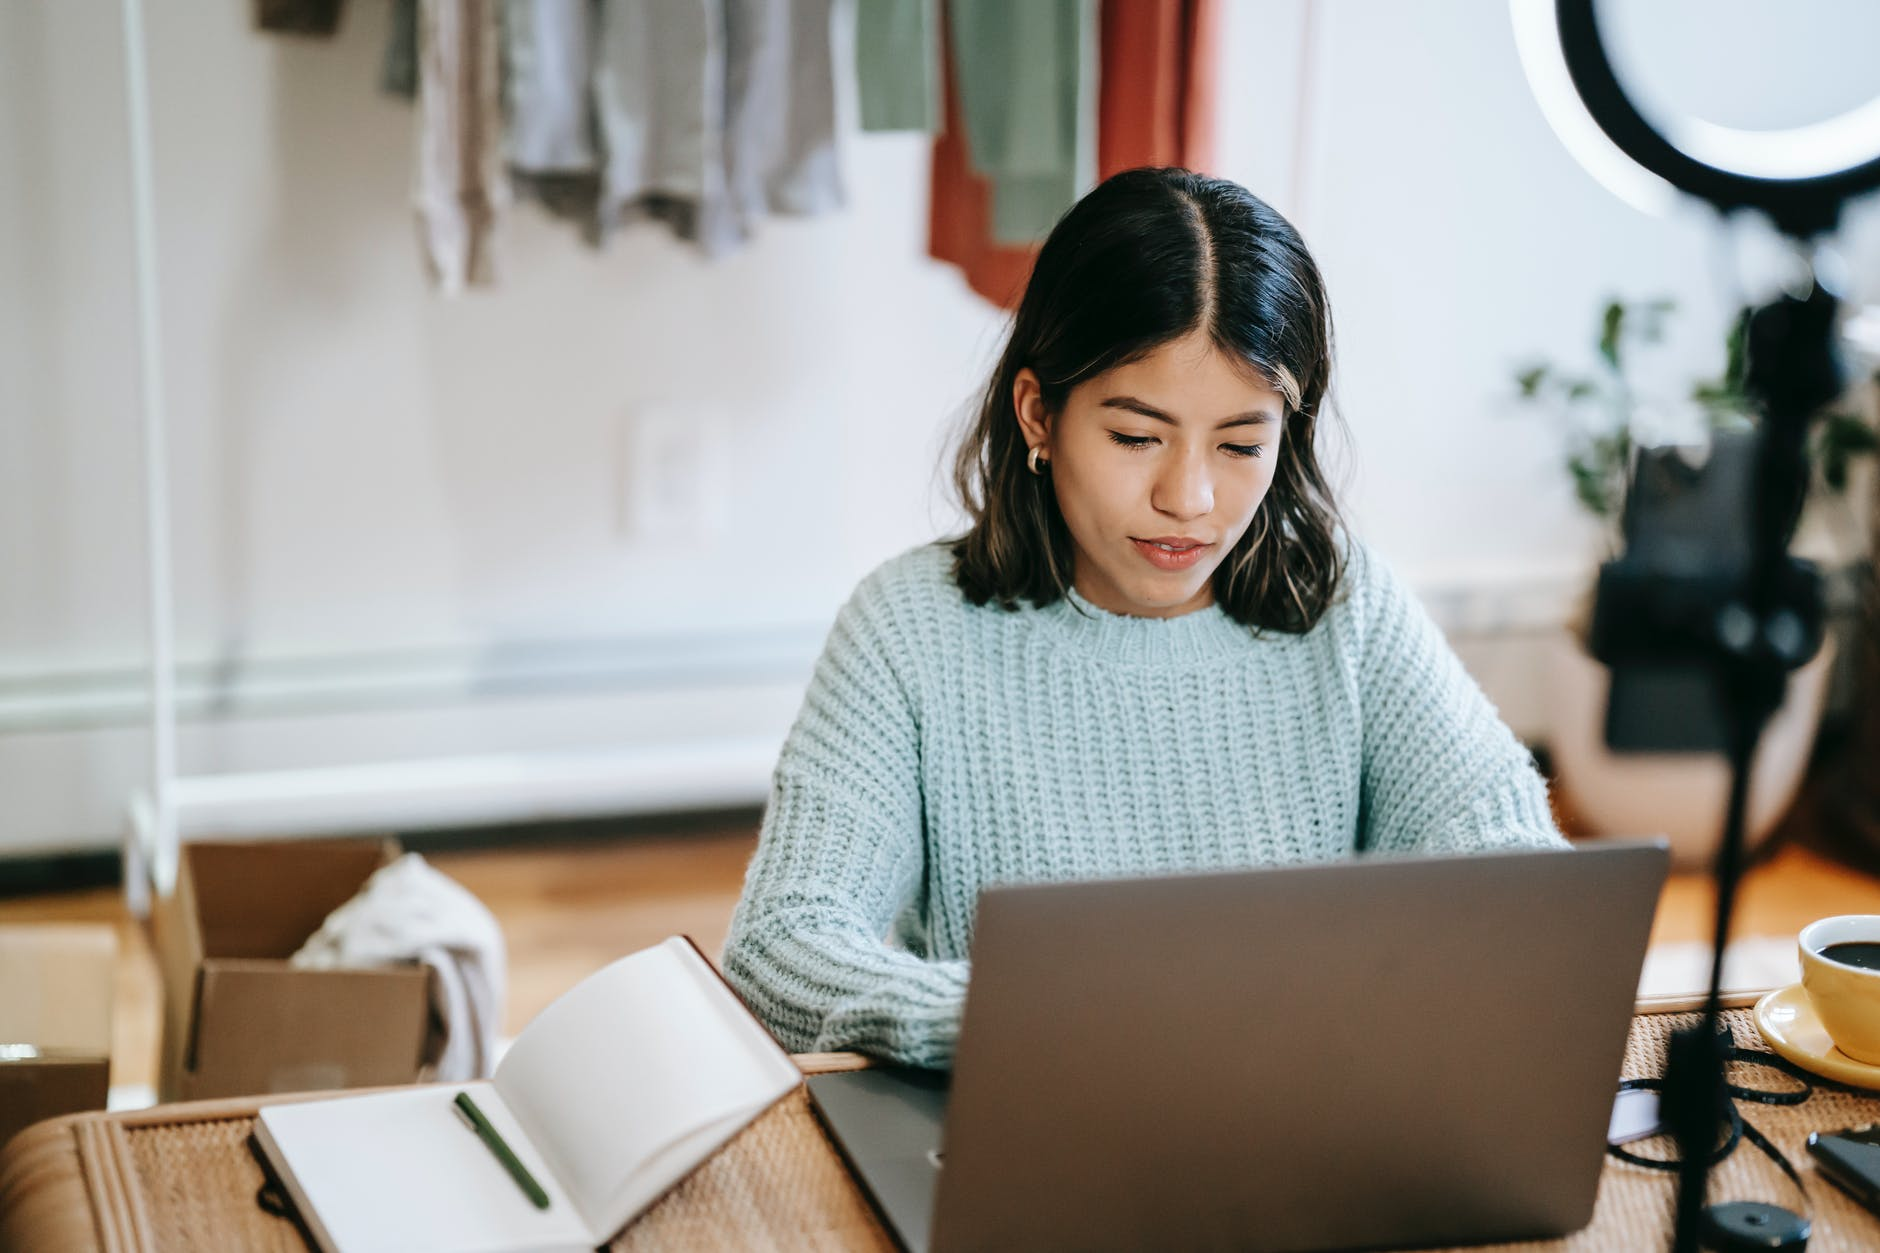 hispanic lady working remotely on laptop near notebook in room